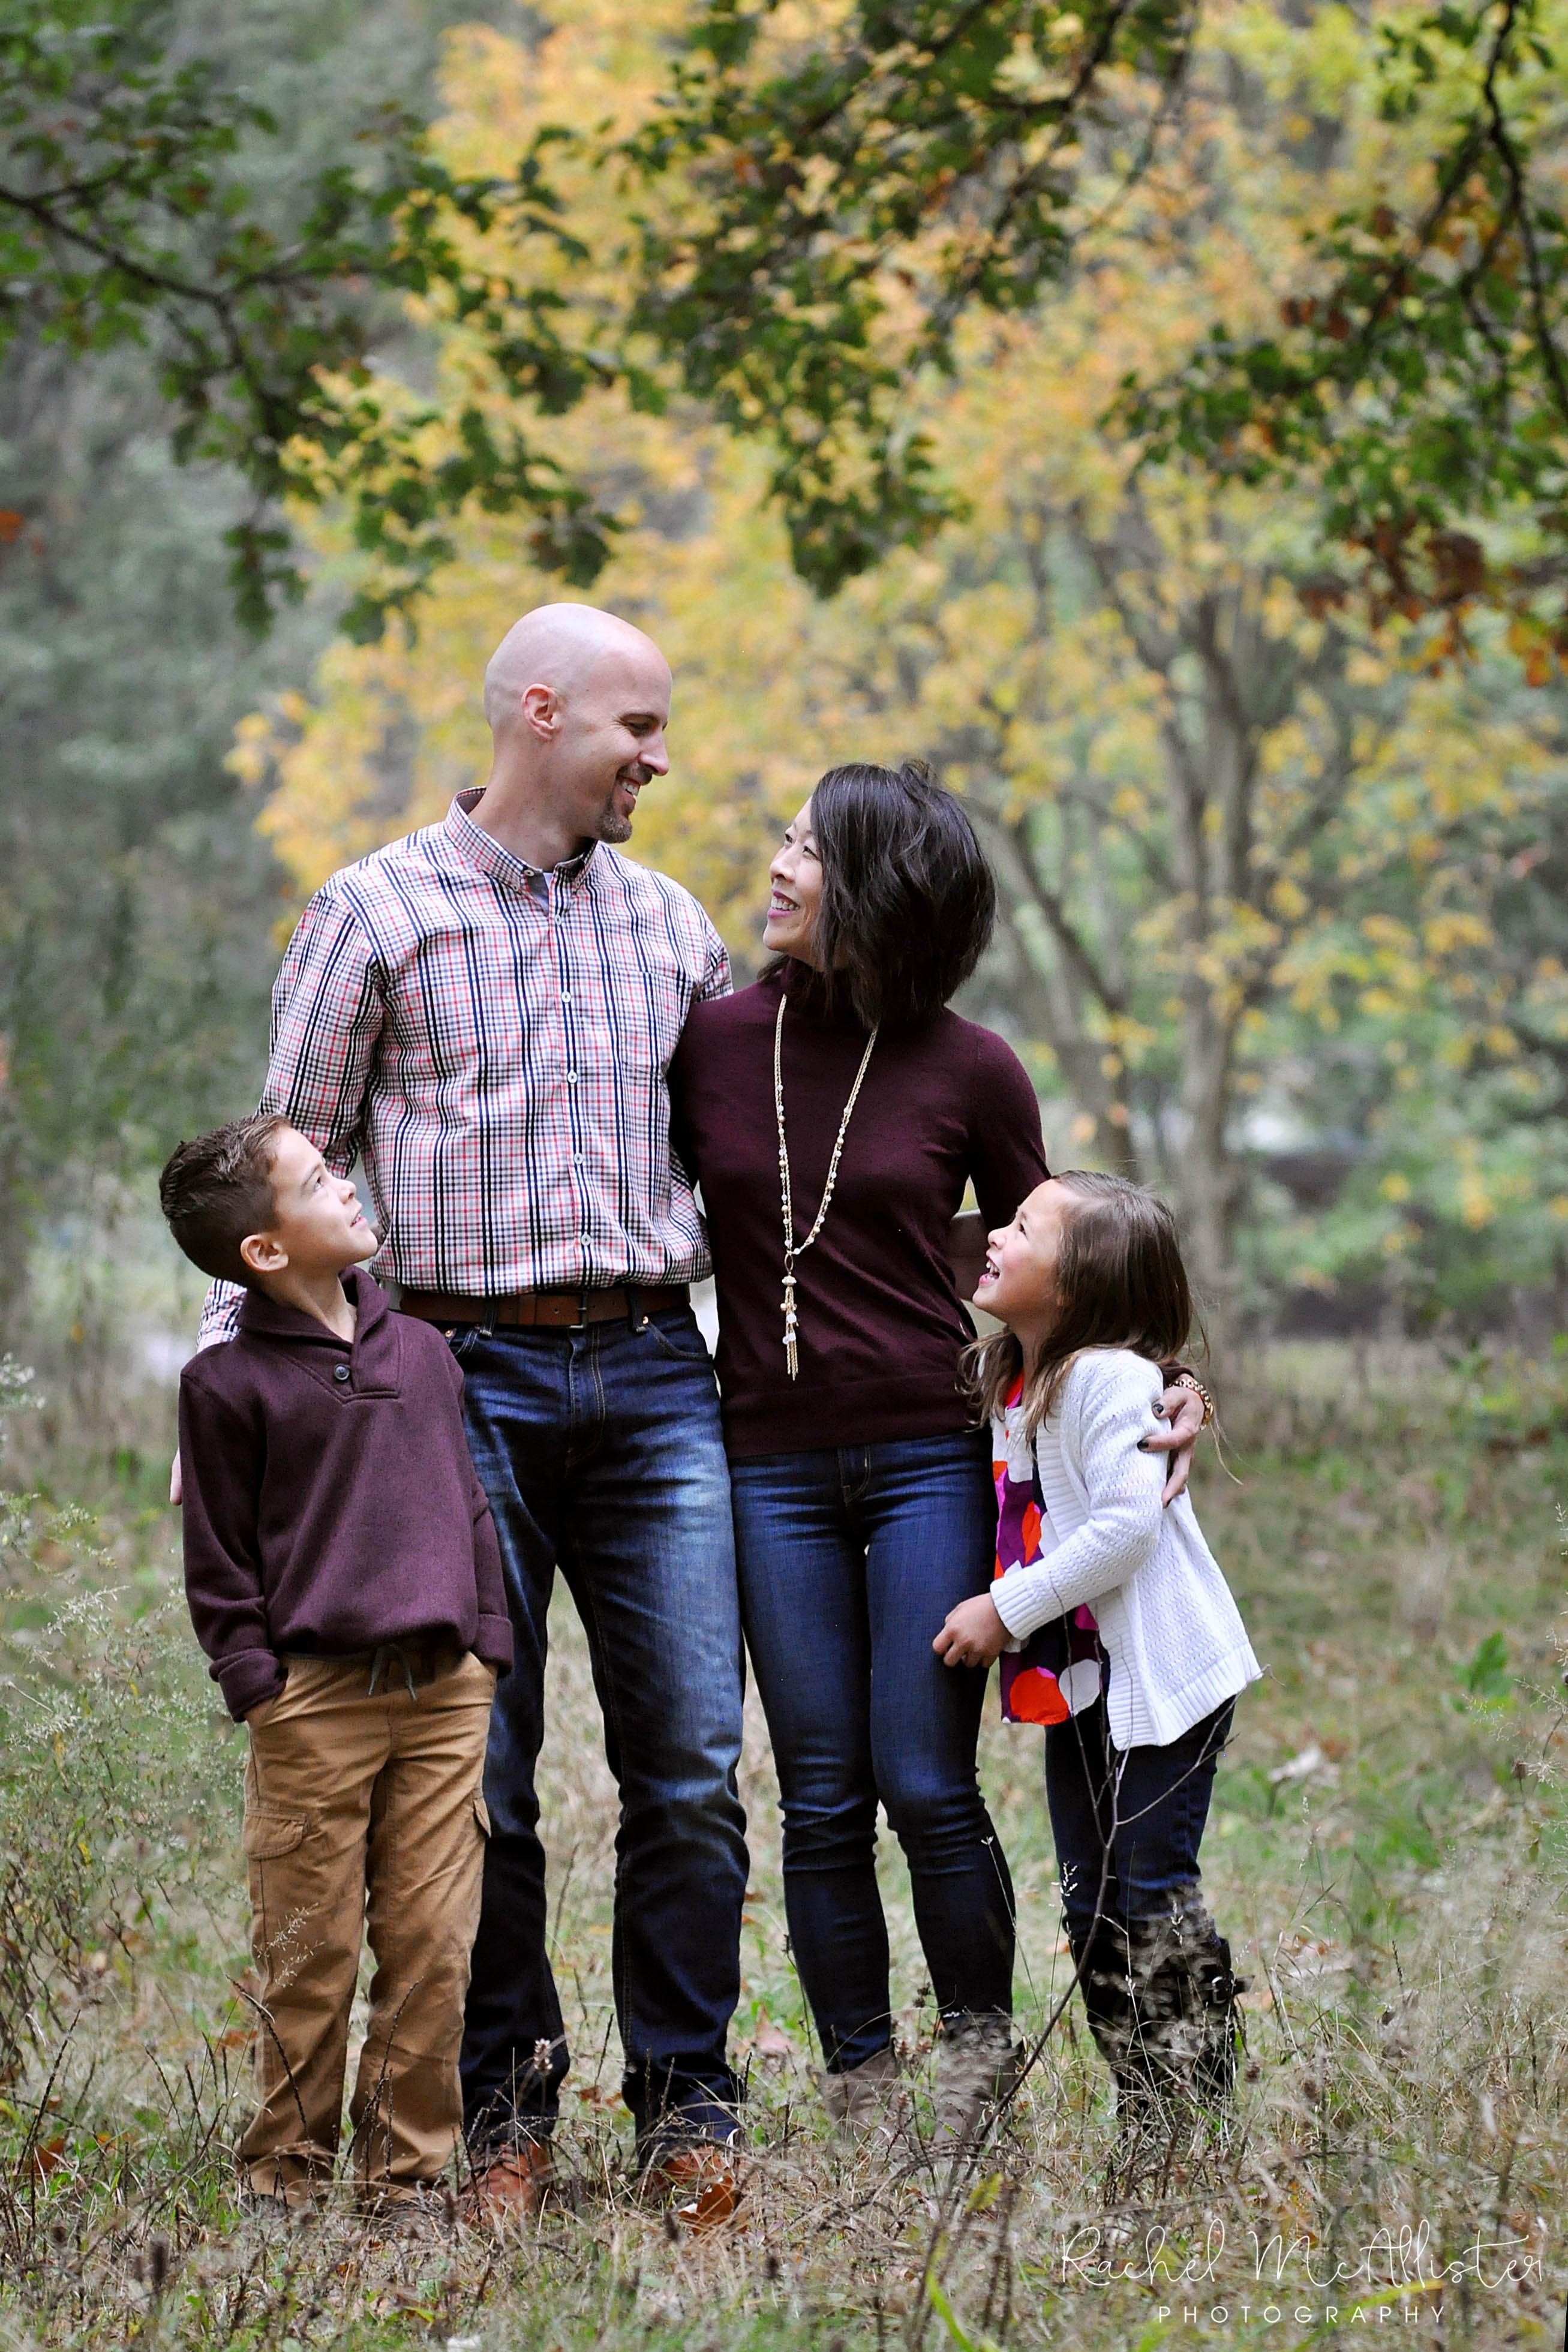 peters family   chicago & western suburbs family photographer